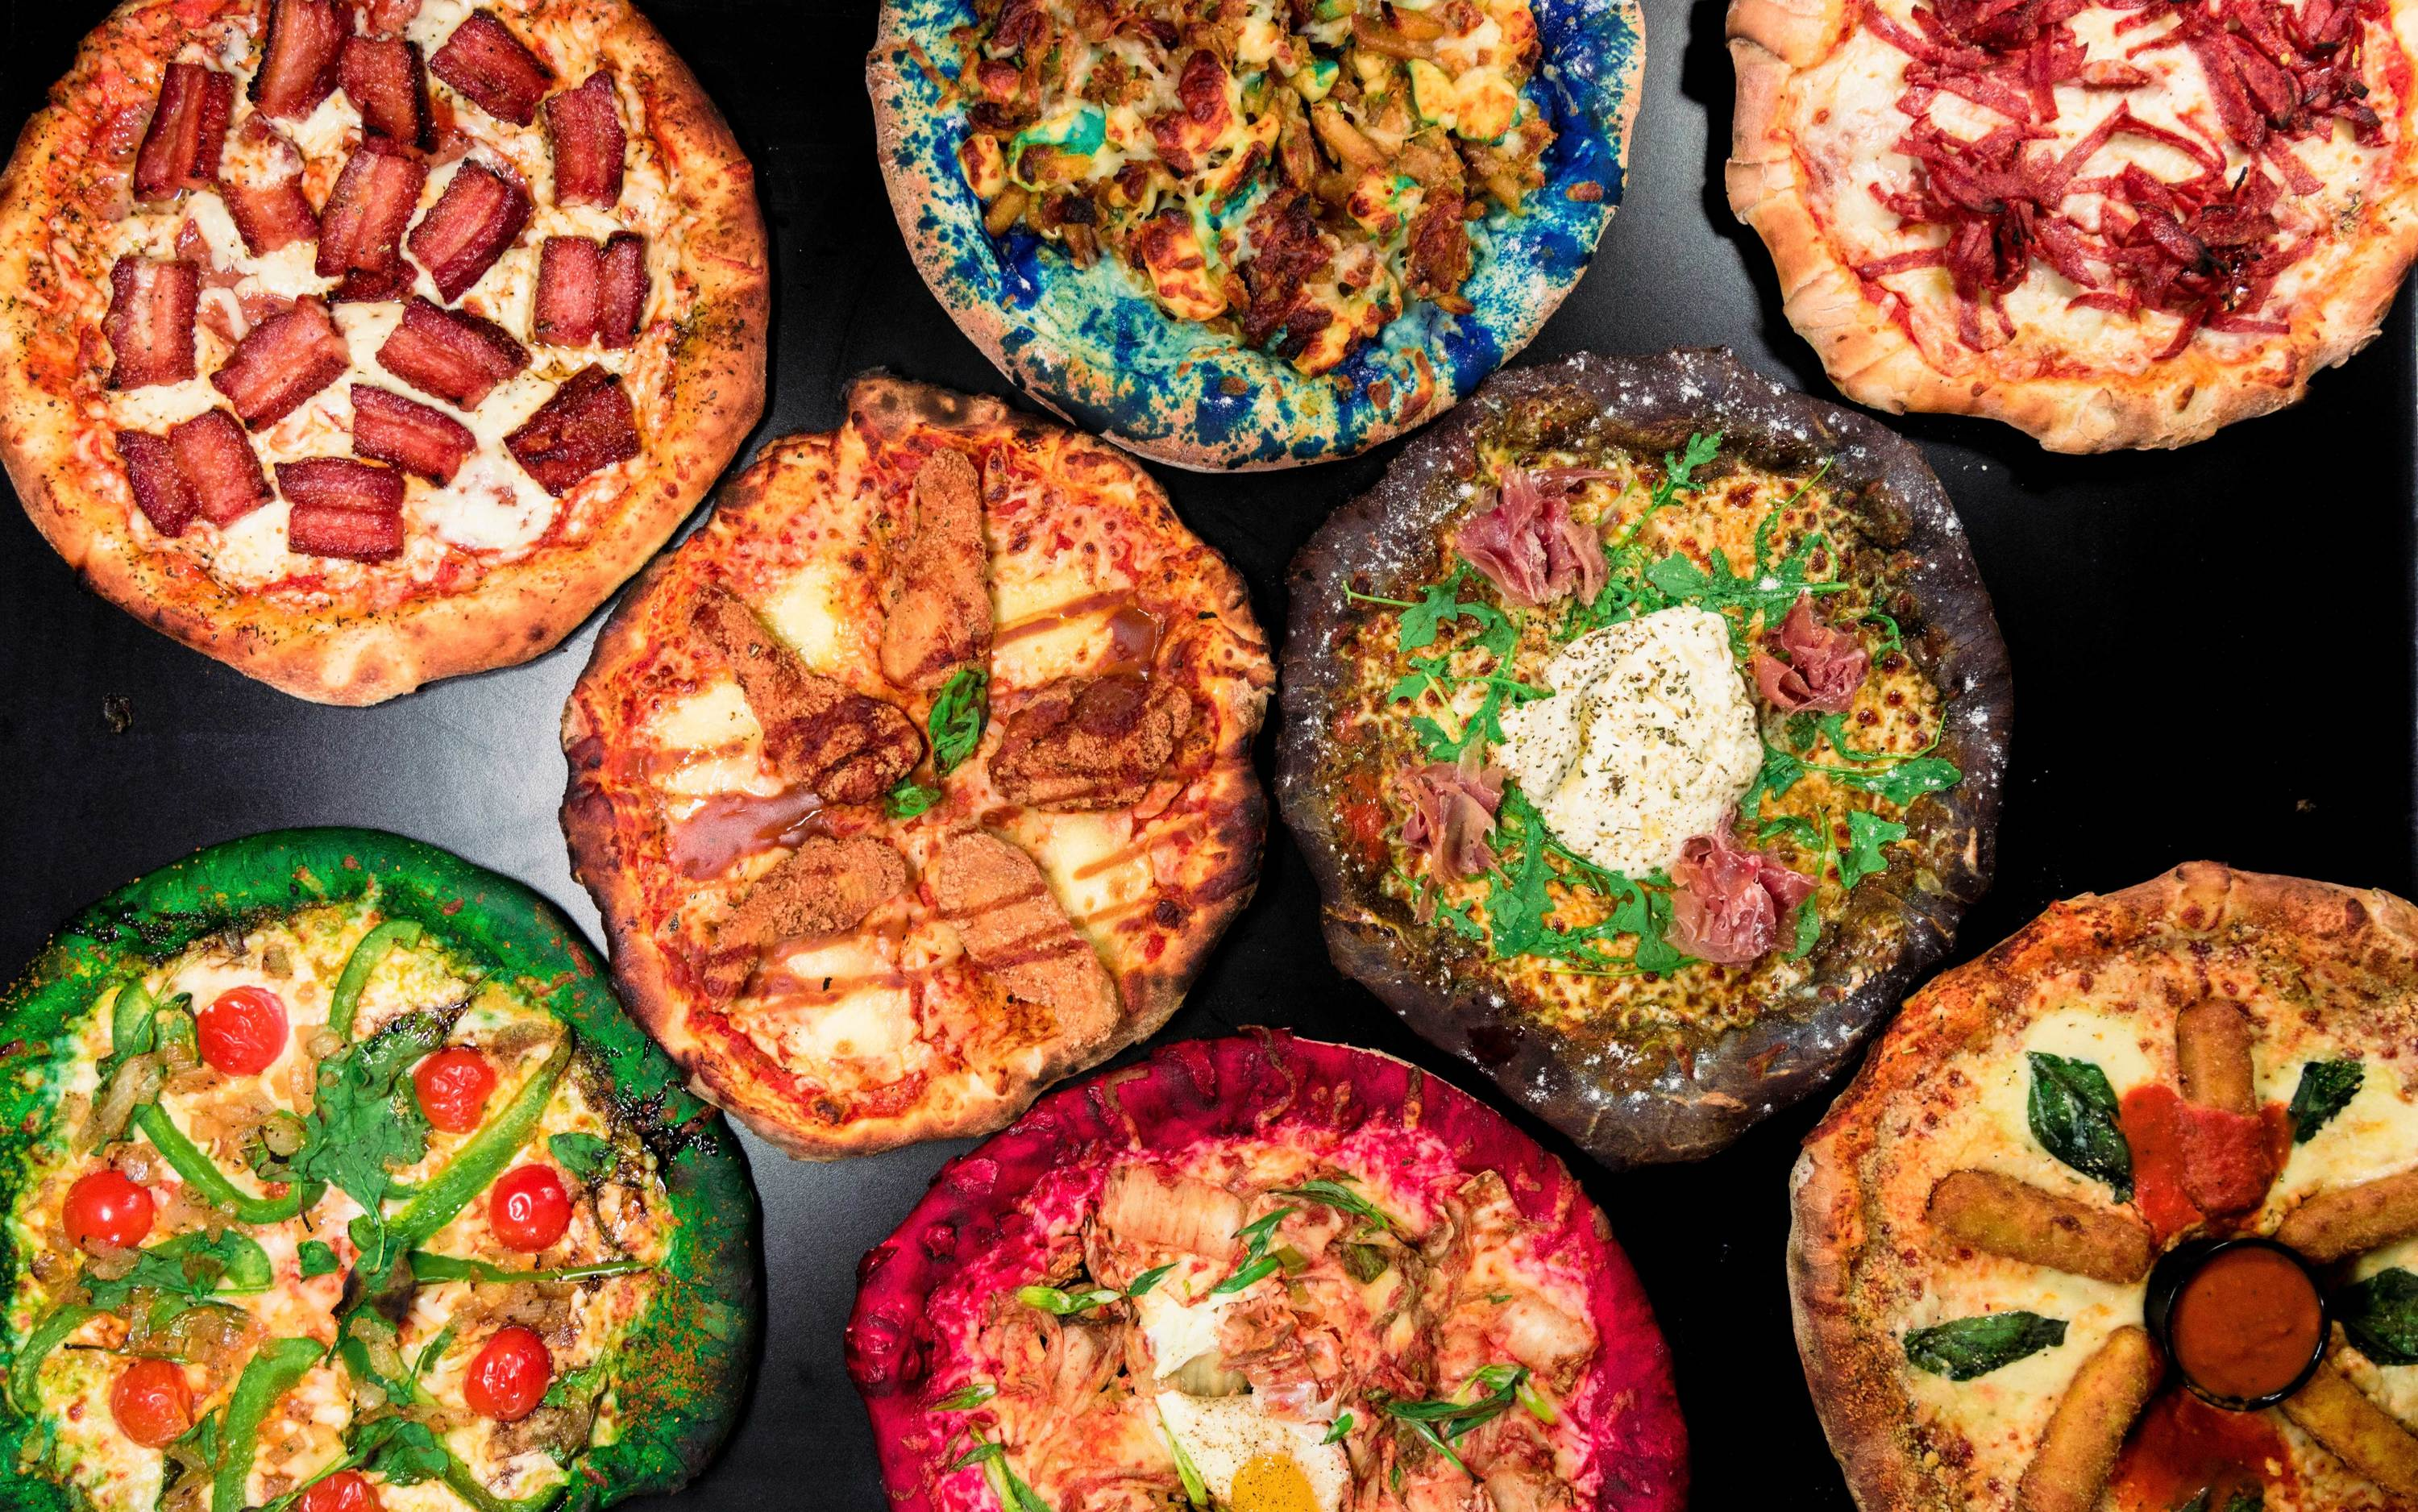 This Montreal pizzeria tops colourful pies with poutine and more, plus boozy soda and milkshakes